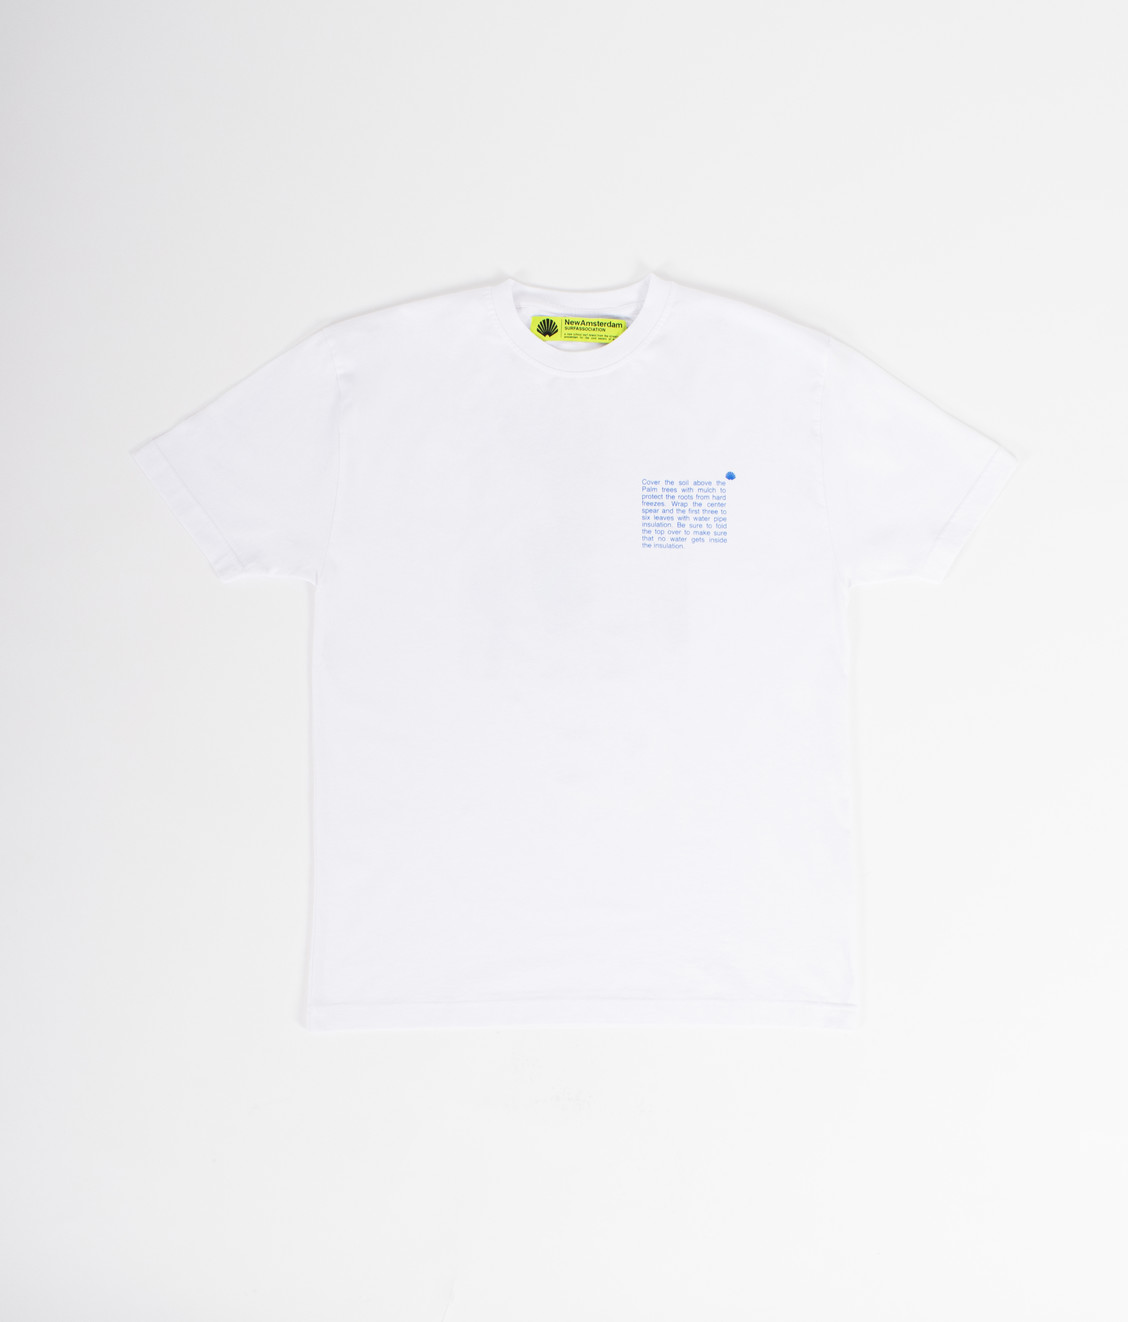 New Amsterdam New Amsterdam Cold Palm Tee White